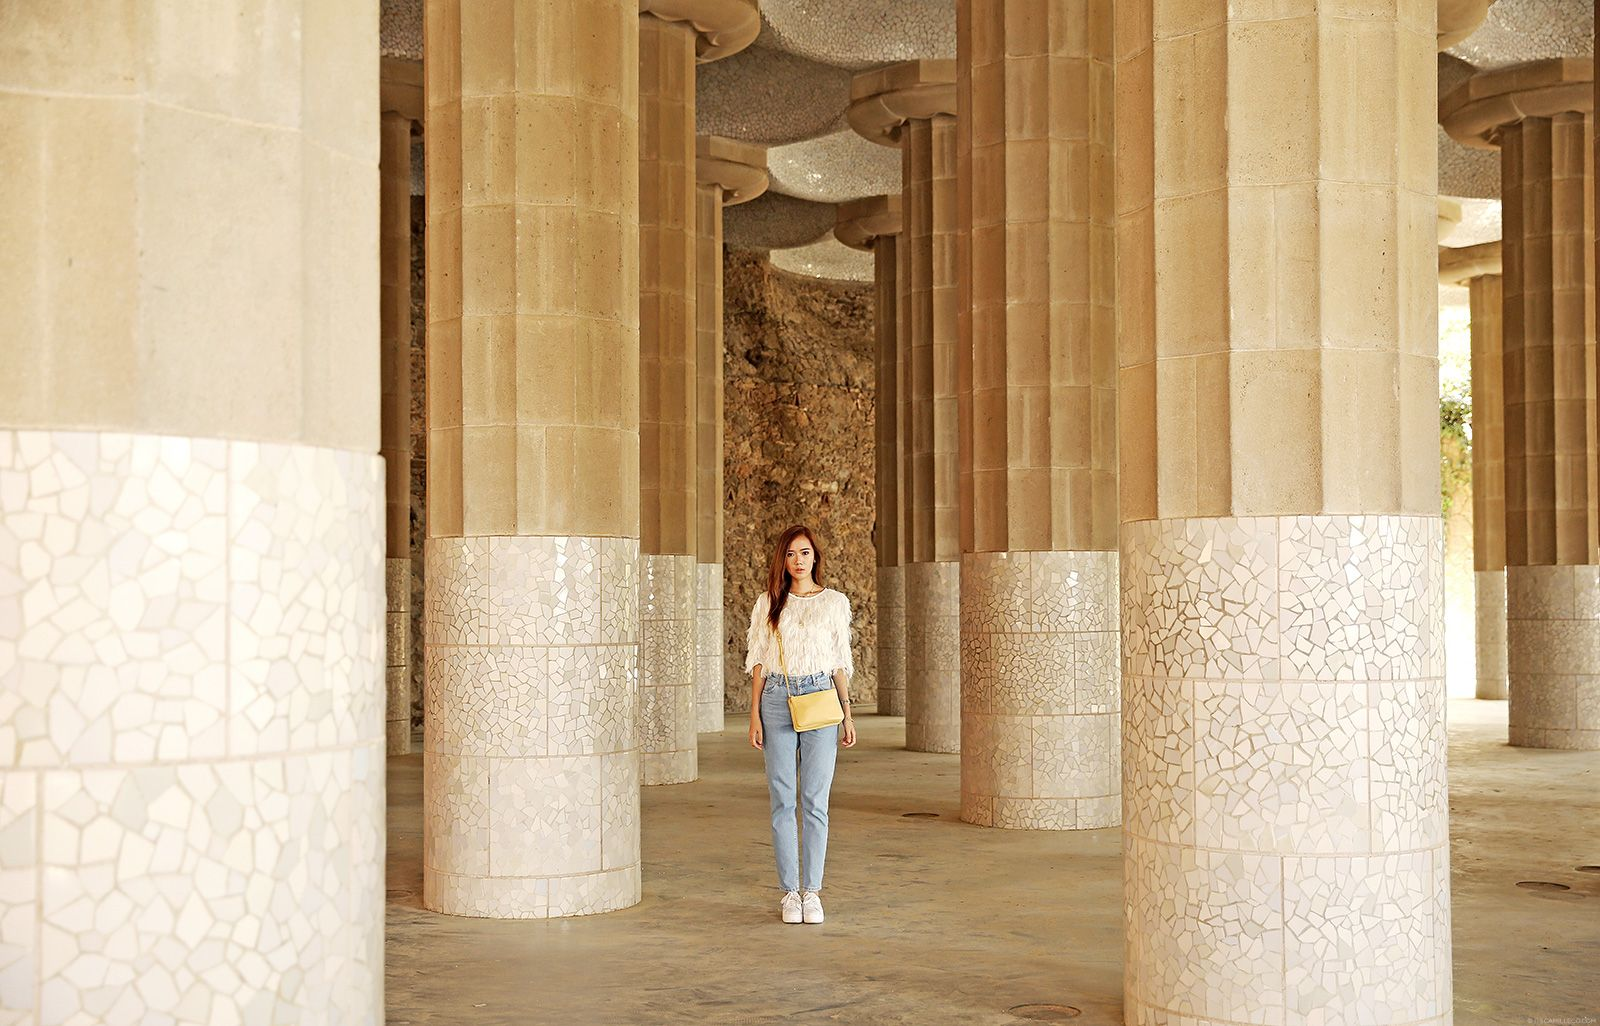 Style Moi Fringe Sweater, Topshop Mom Jeans, No Name Platform Sneakers at Park Güell - www.itscamilleco.com